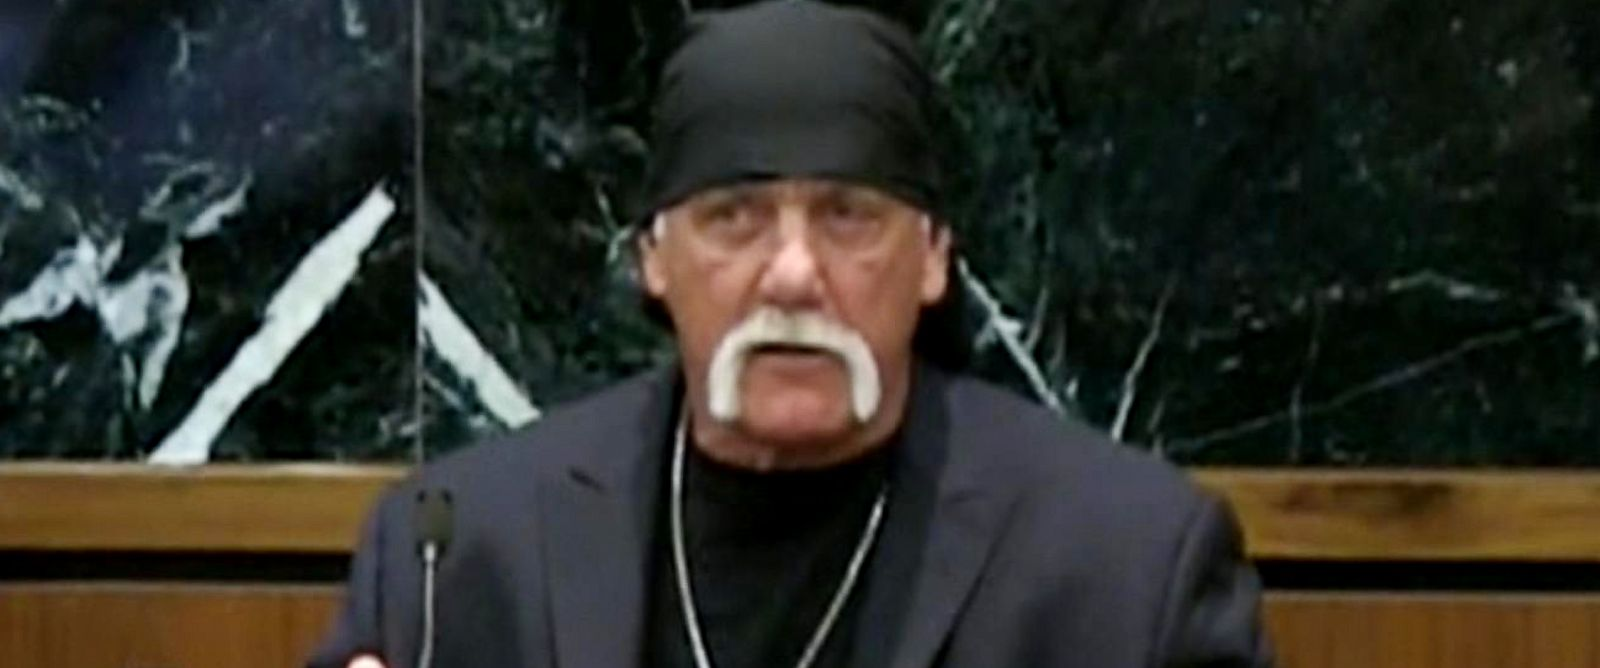 PHOTO: Terry Bollea, known as professional wrestler Hulk Hogan takes the stand at the Pinellas County Courthouse, in St. Petersburg, Fla., March 8, 2016.